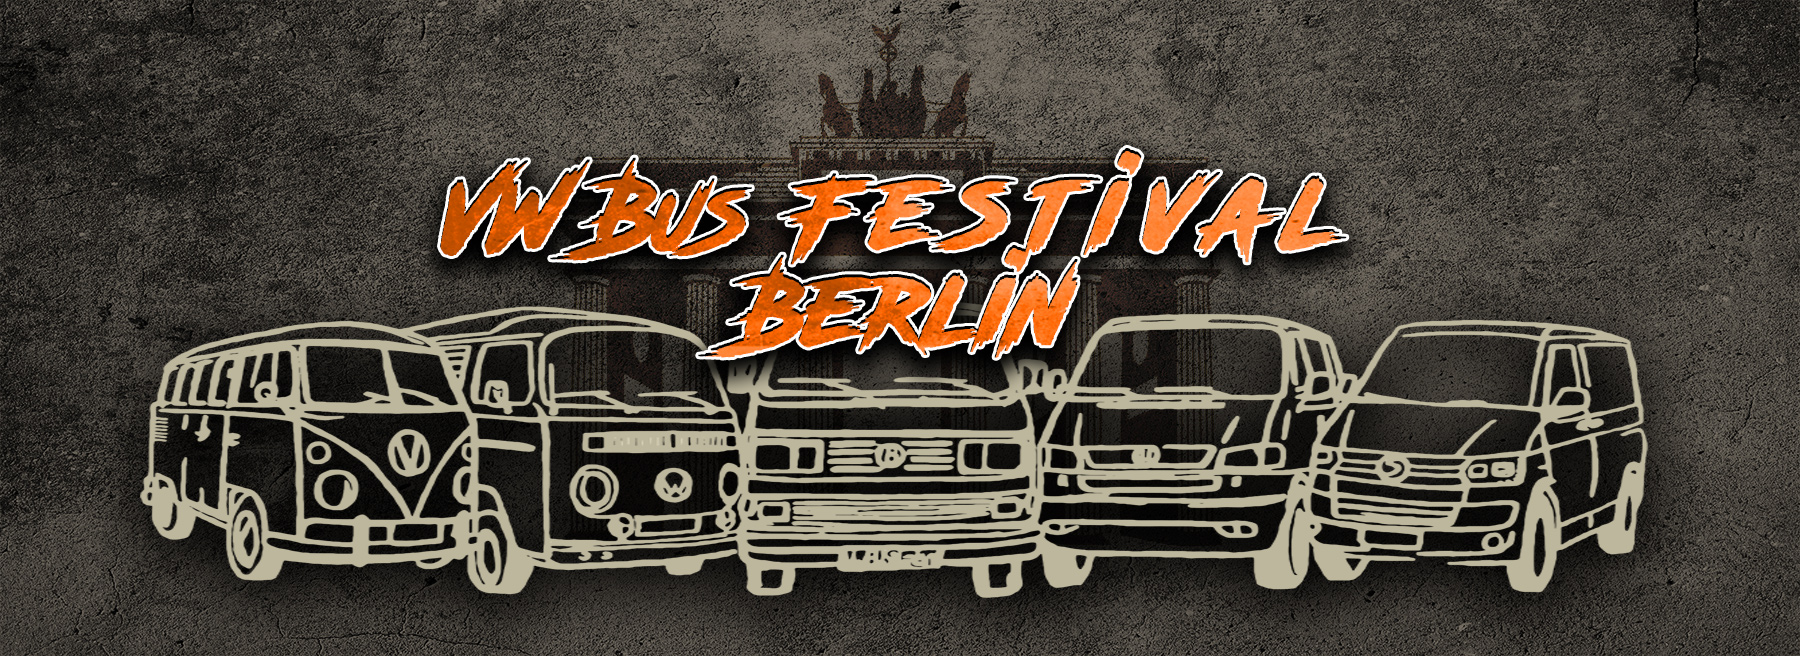 10. VW Bus Festival Berlin